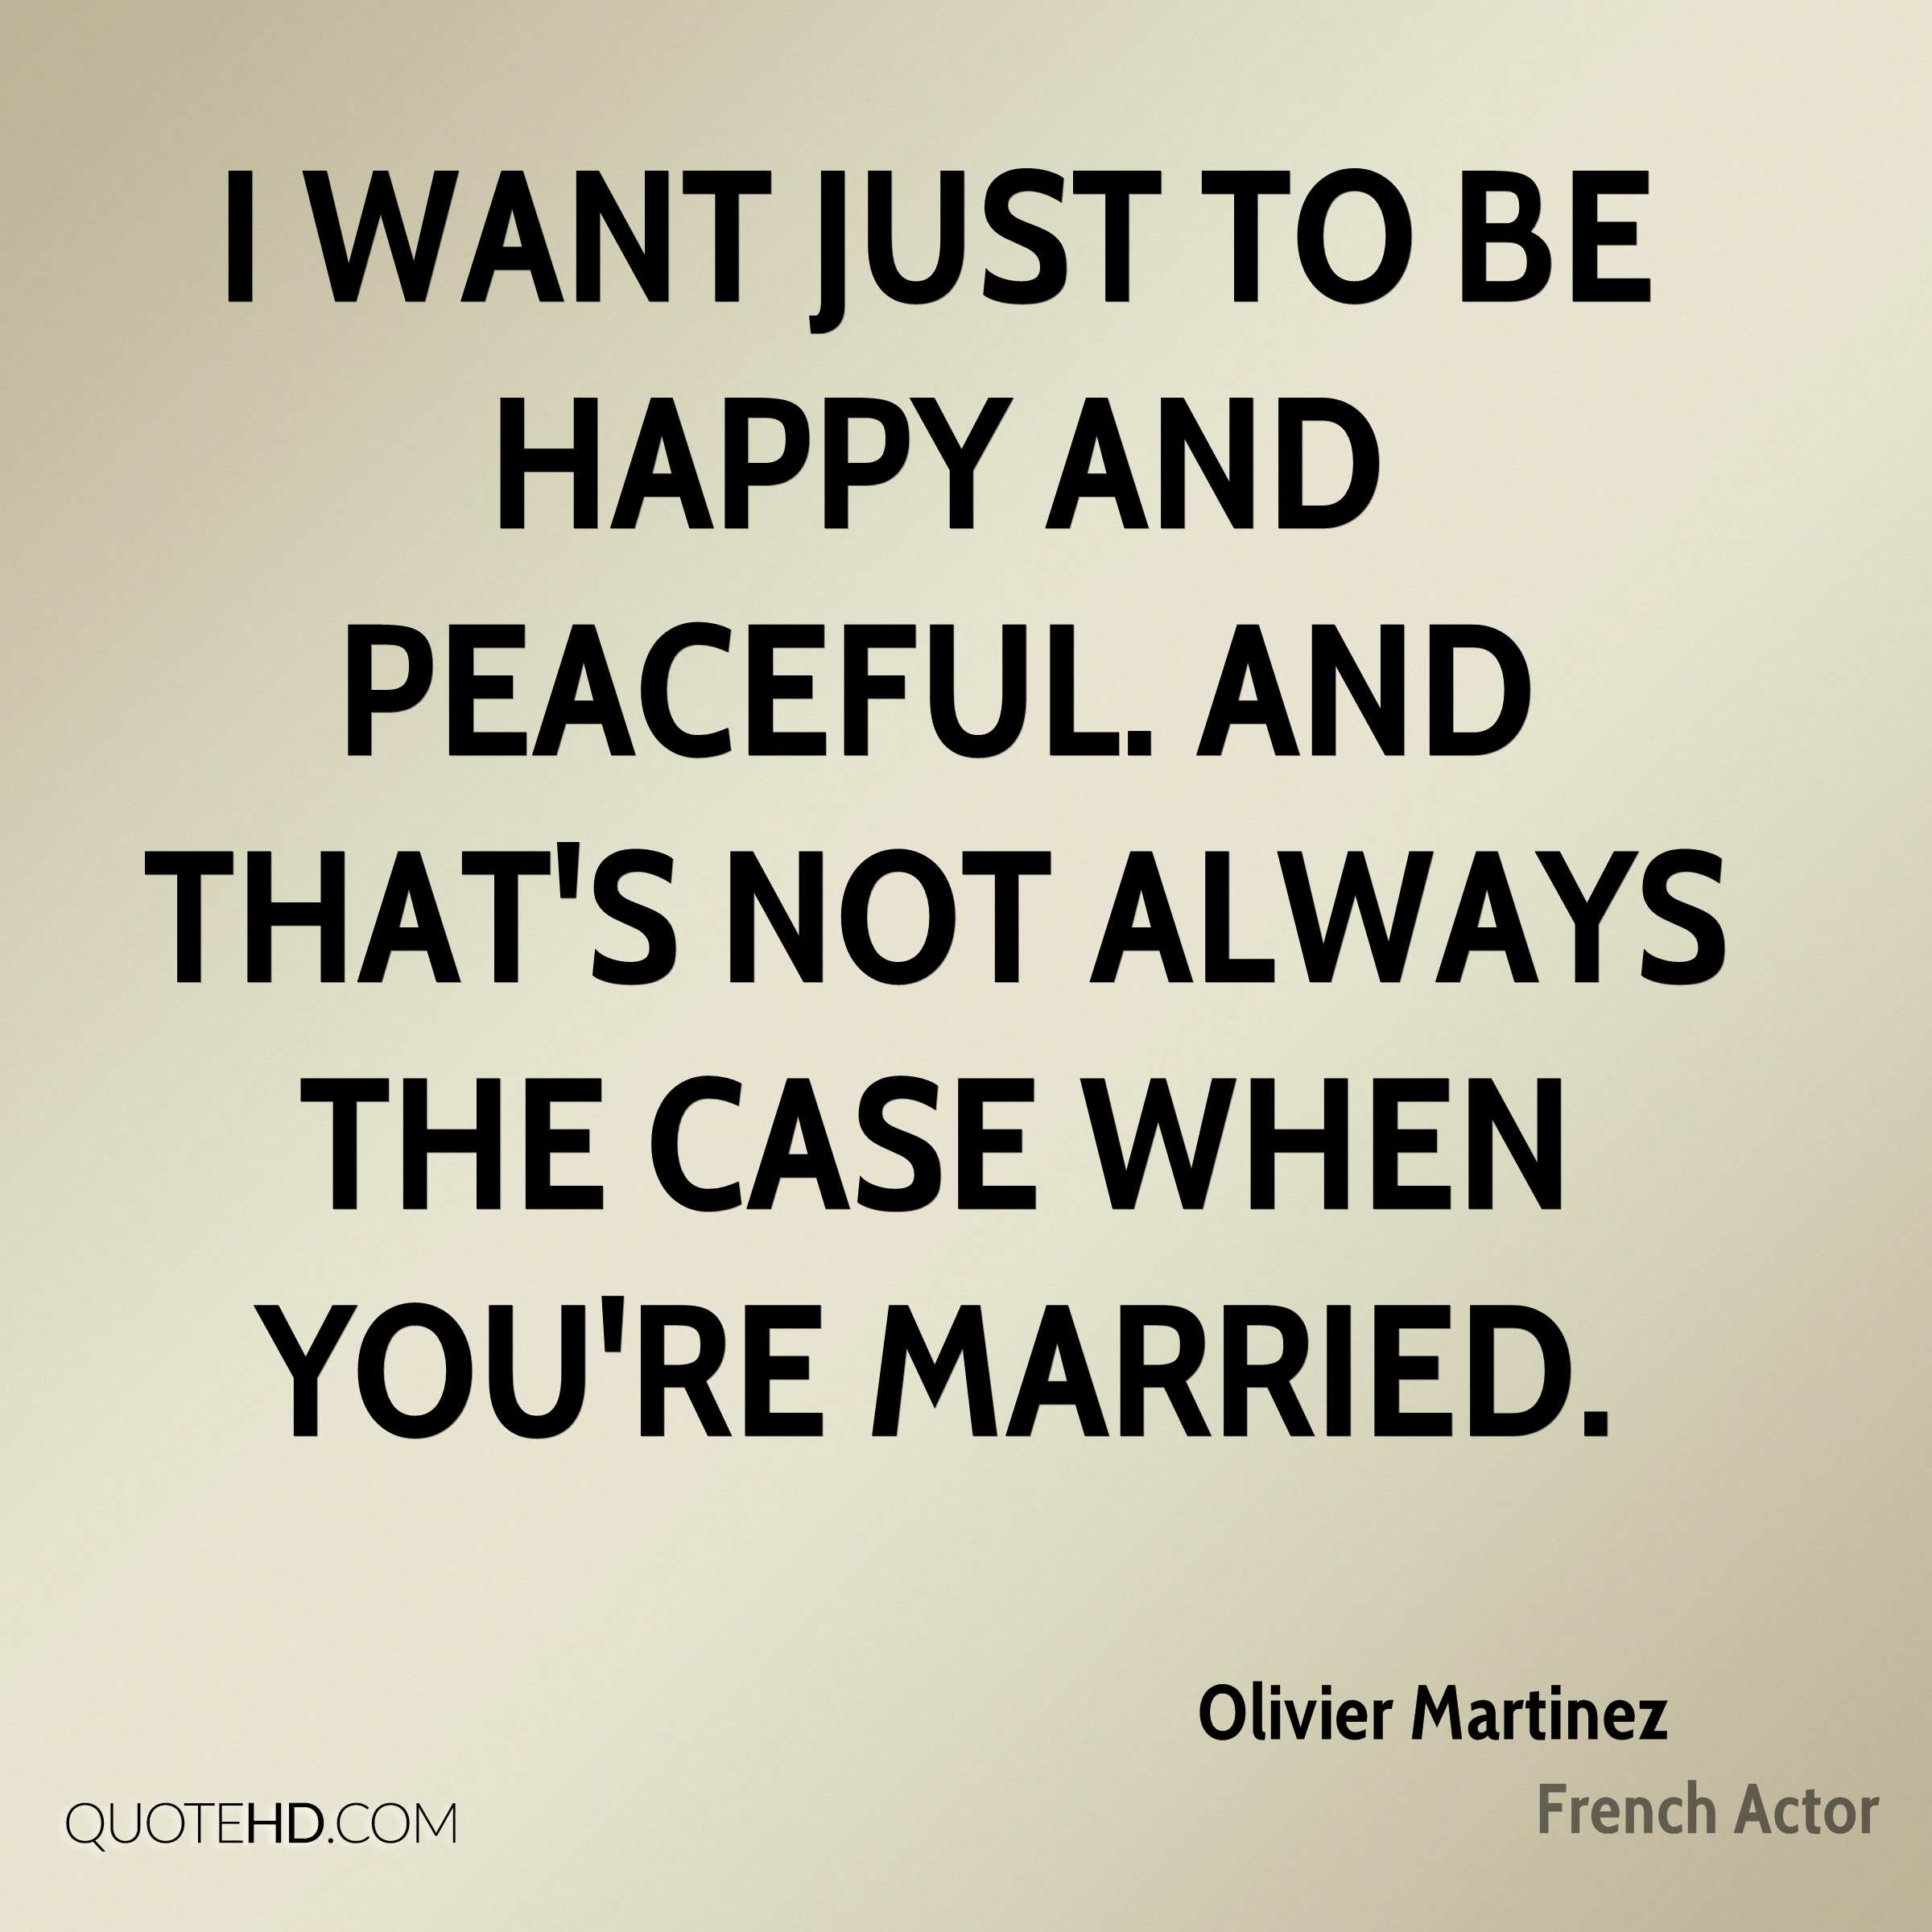 Just Married Quotes Olivier Martinez Marriage Quotes  Quotehd